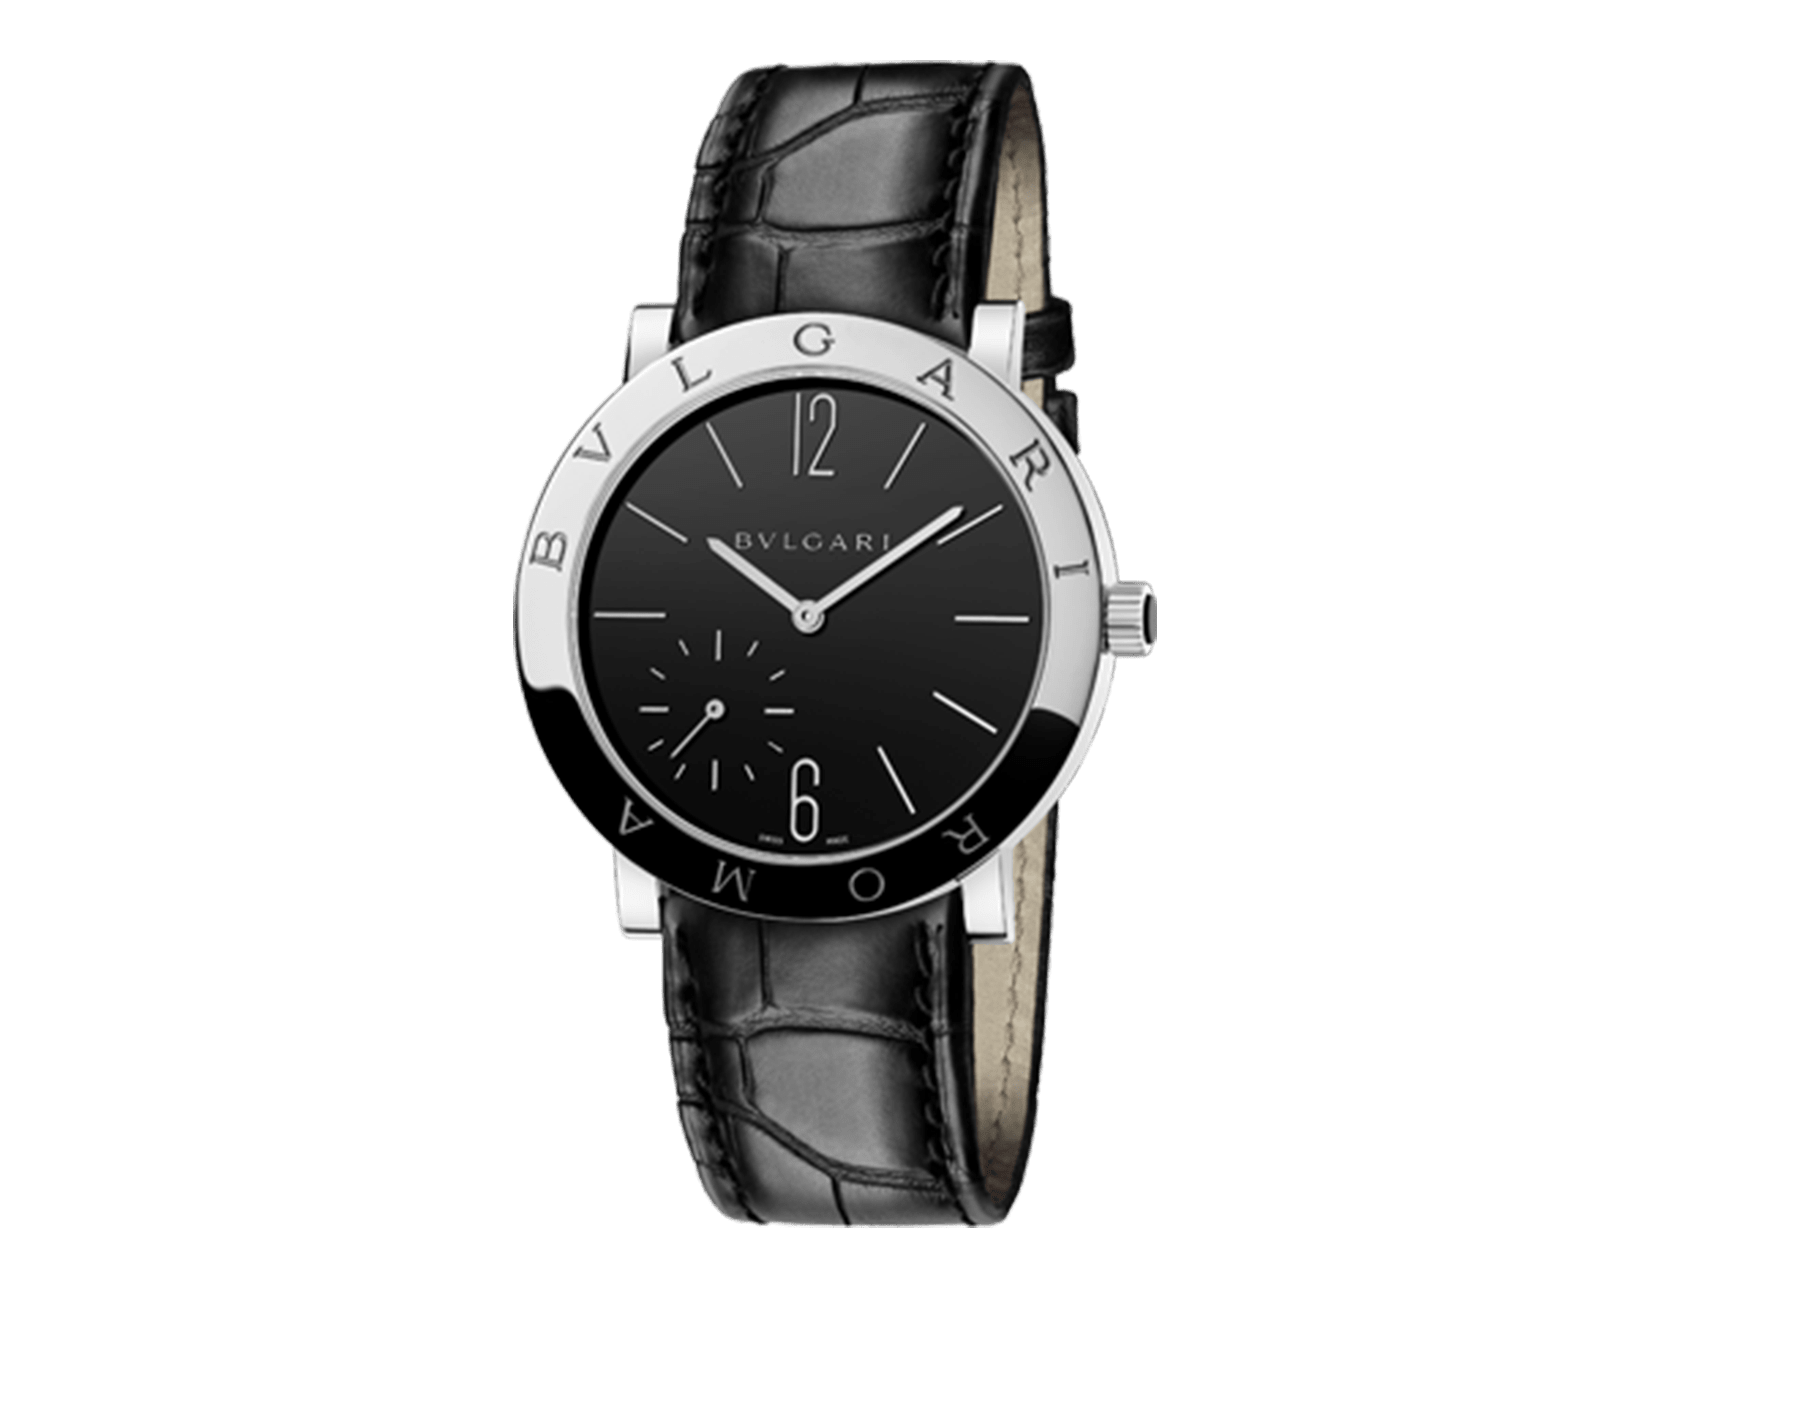 BVLGARI ROMA Finissimo watch with mechanical manufacture movement, manual winding, small seconds, stainless steel case, black lacquered dial and black alligator bracelet 102357 image 1